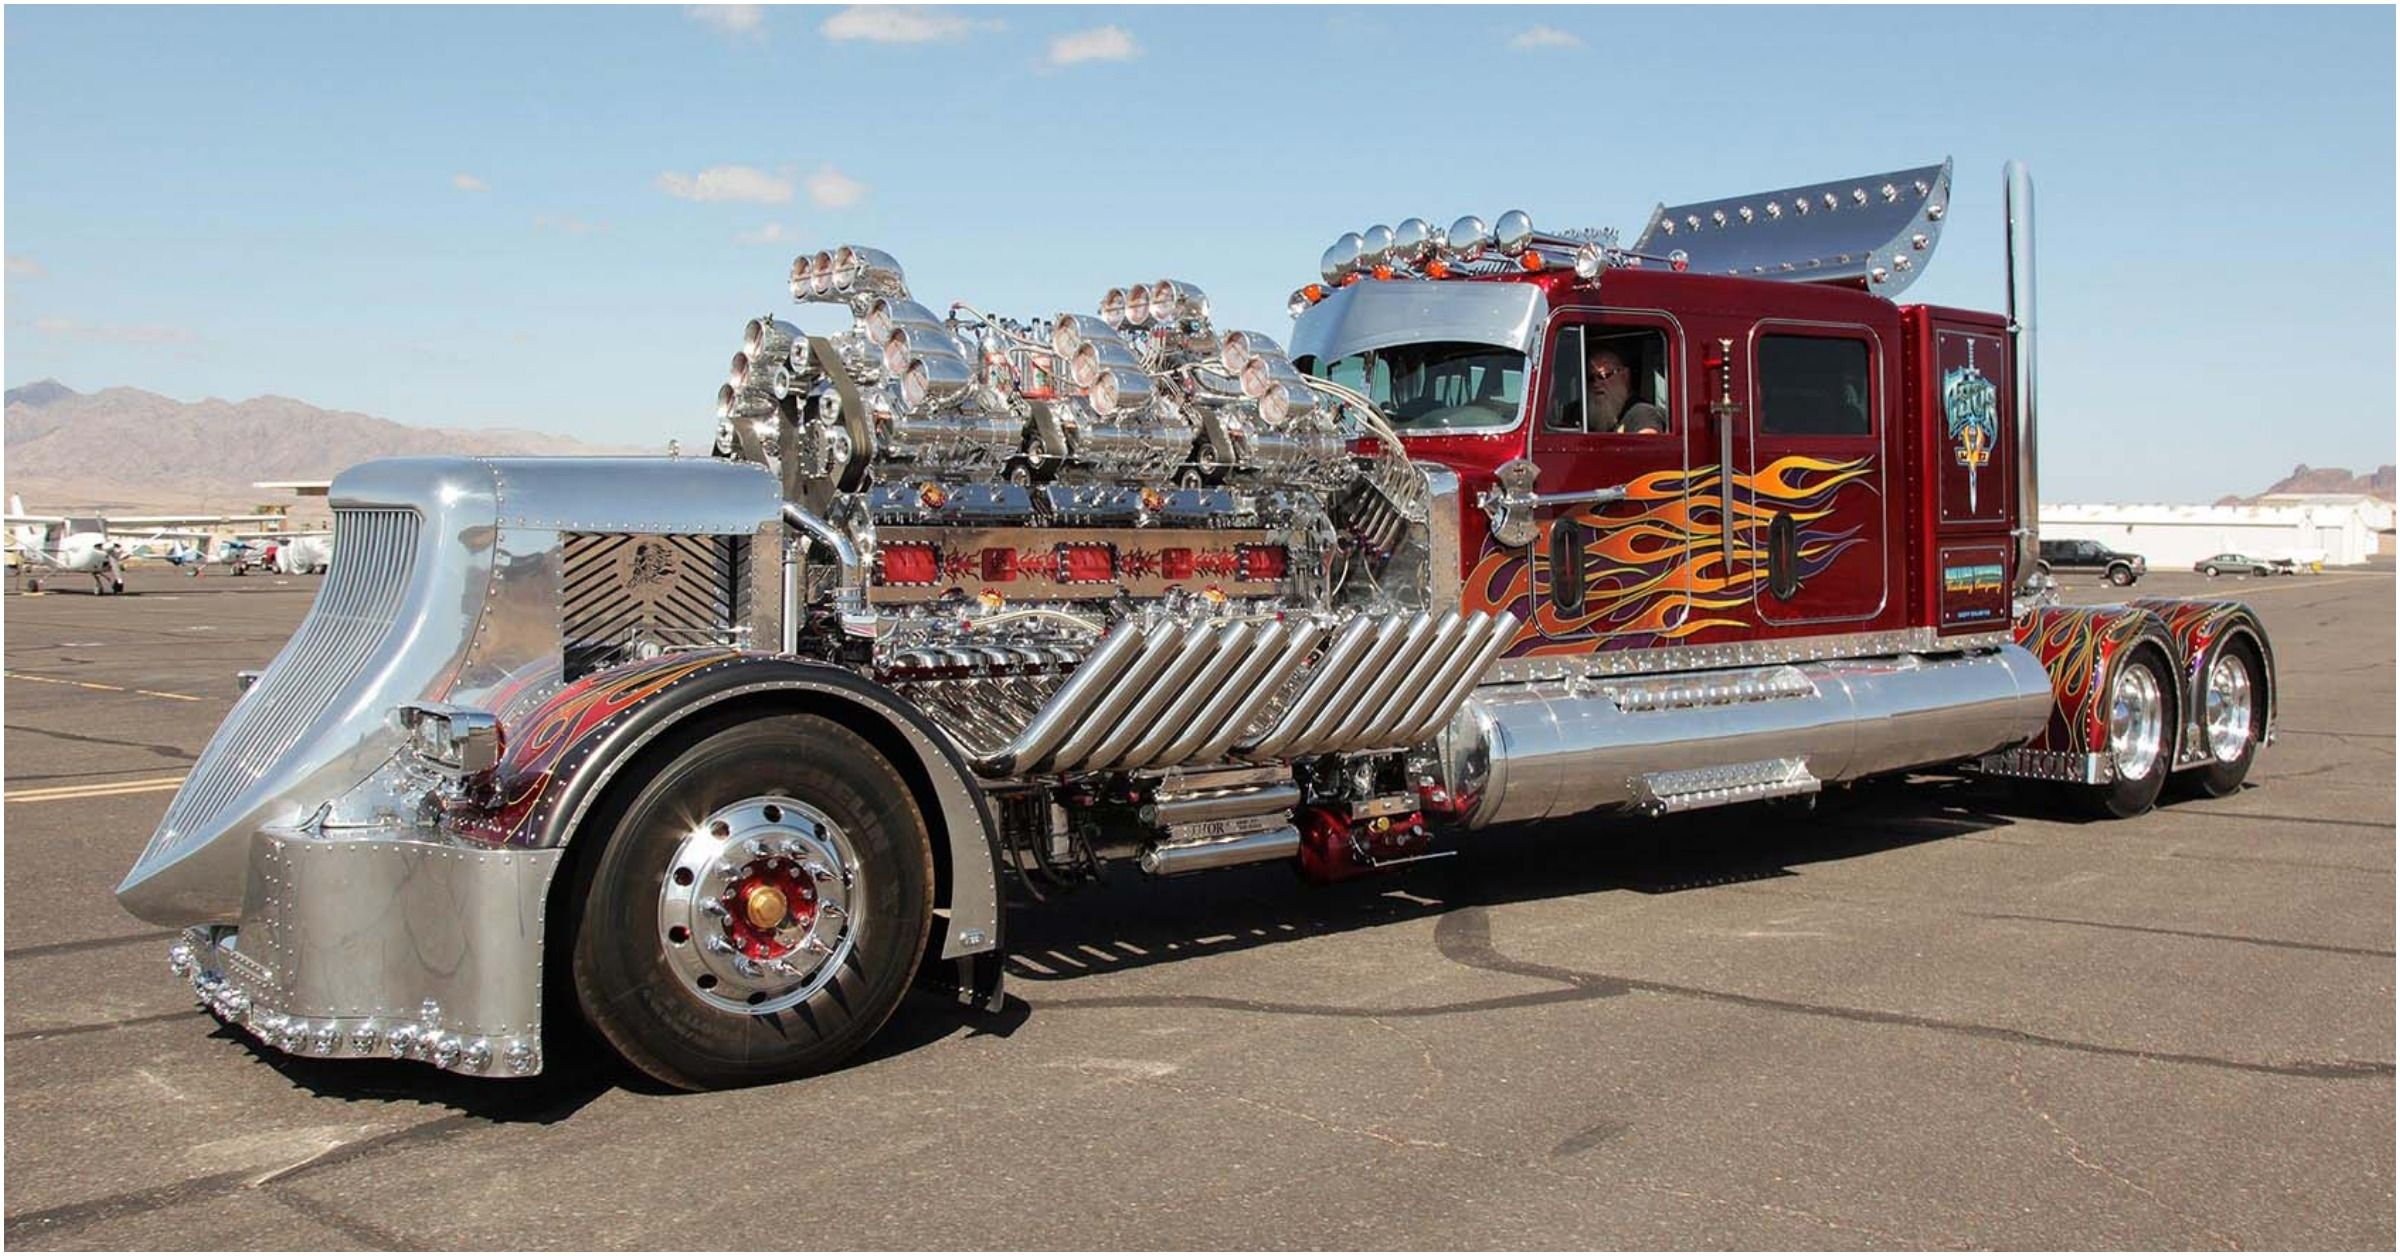 15 Modded Big Rigs That Would Make West Coast Customs Proud